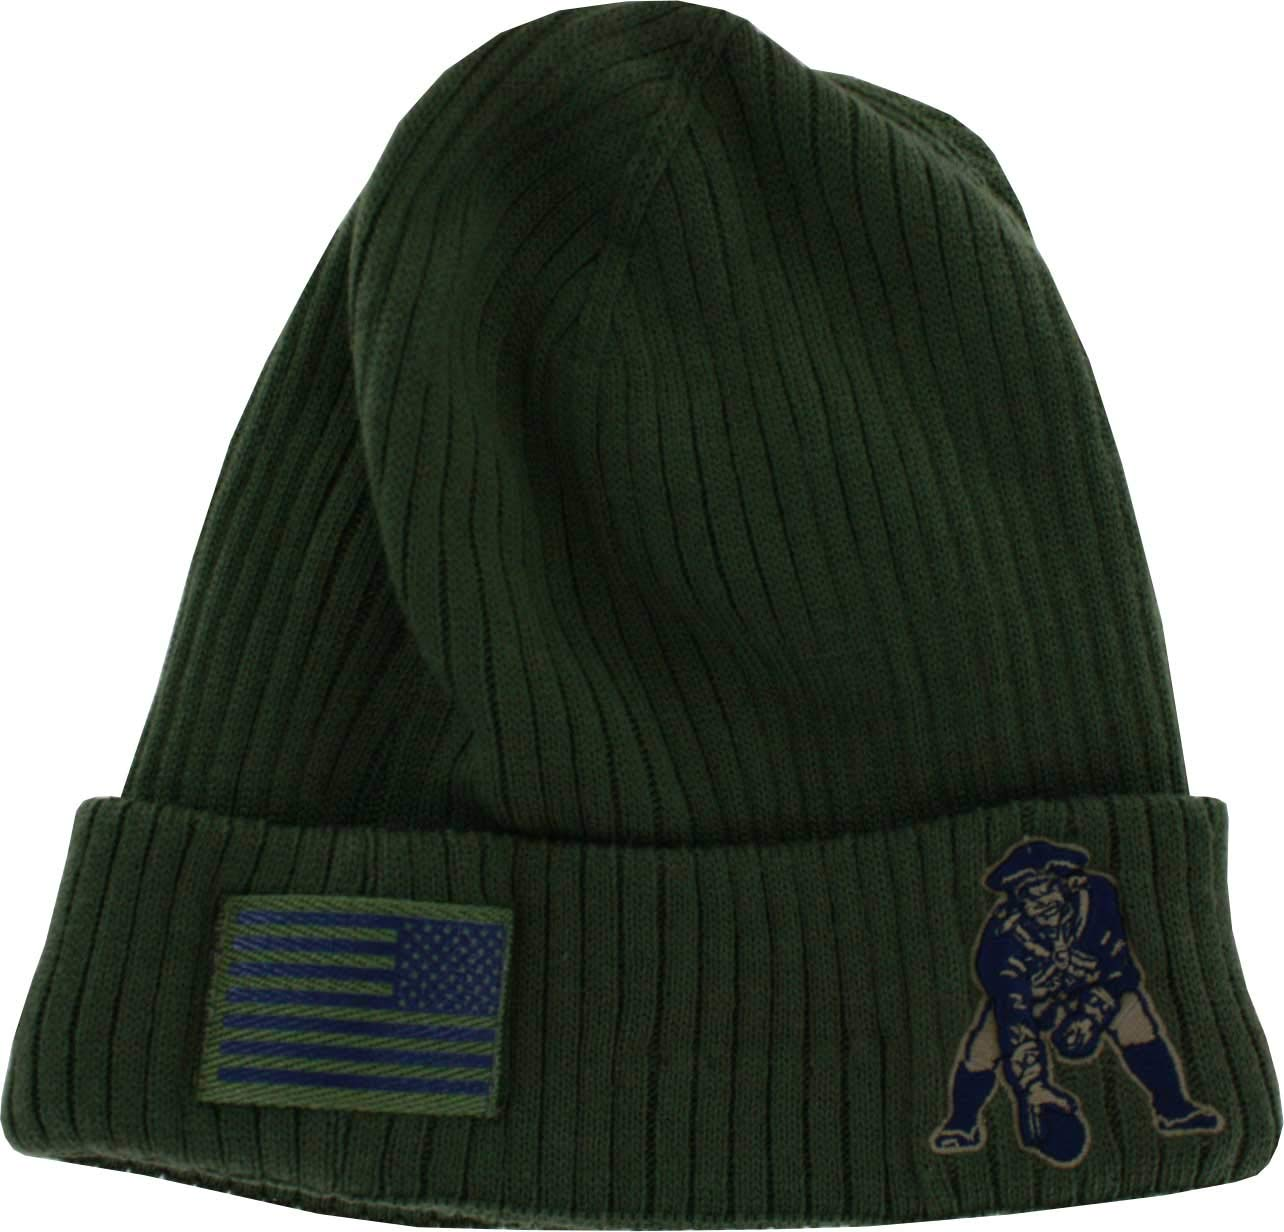 877960e8231 Amazon.com   England Patriots Throwback 2018 On Field Salute to Service  Knit Hat   Sports   Outdoors